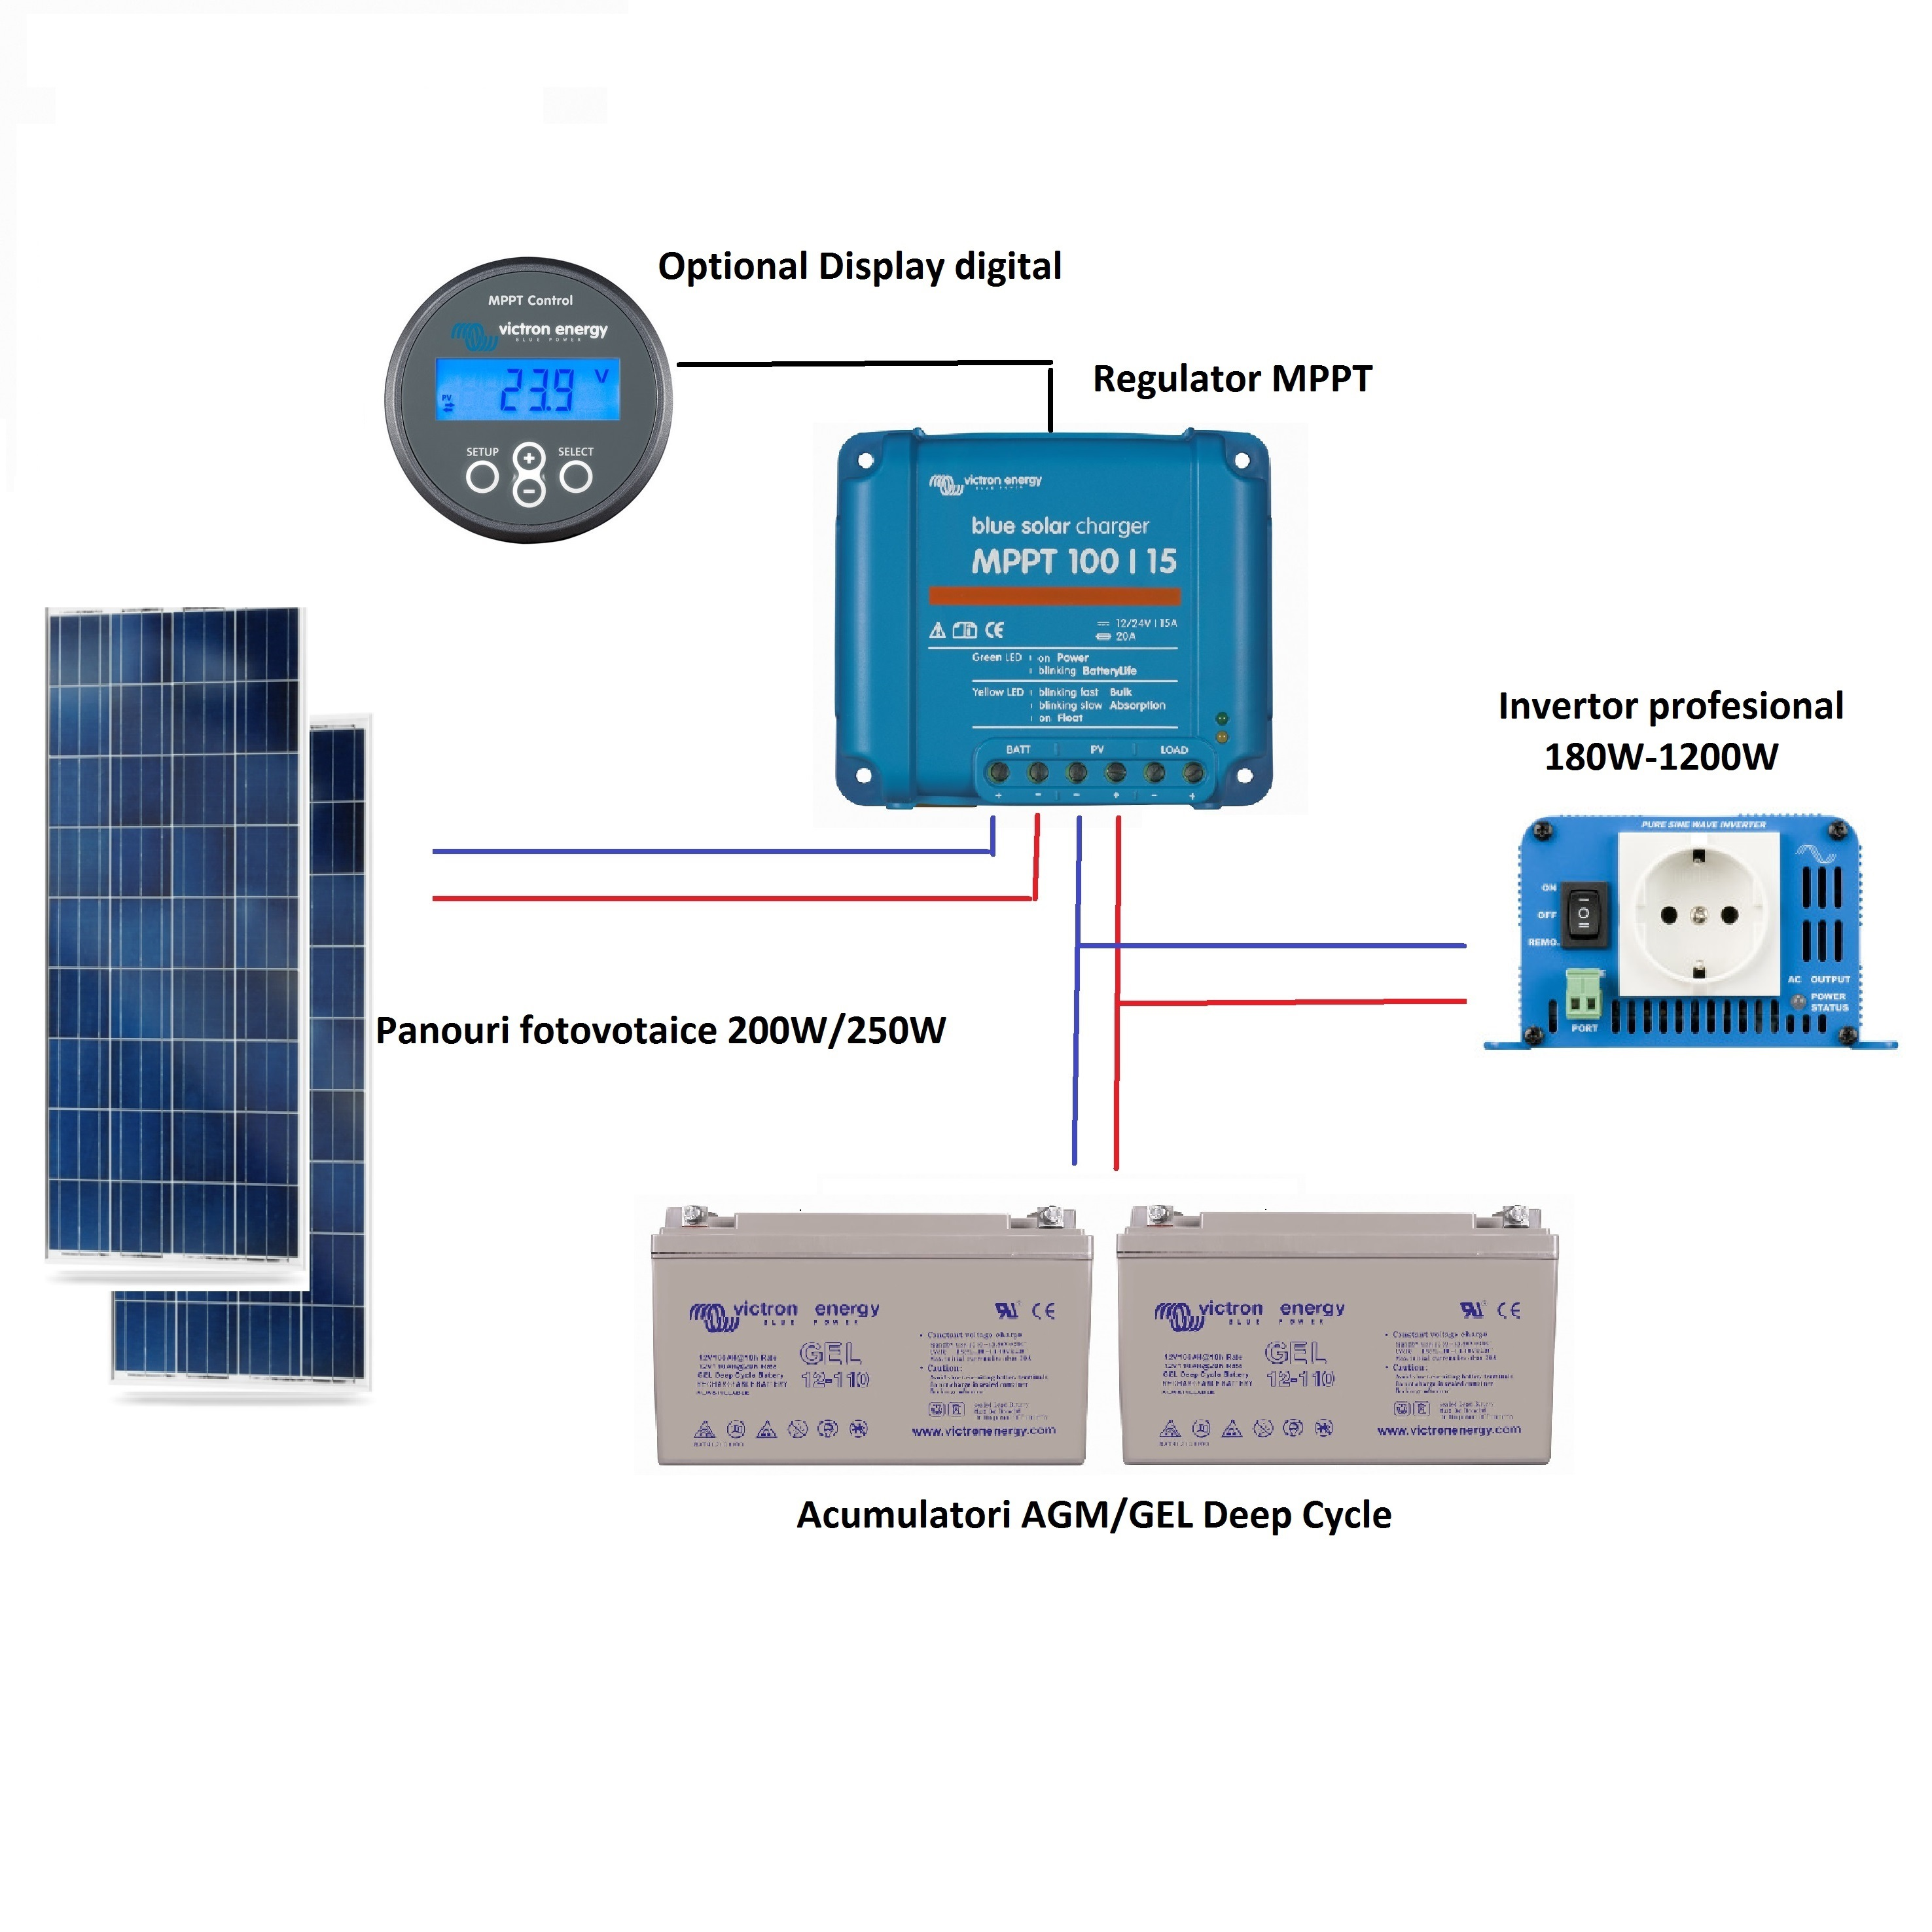 Kit-uri fotovoltaice off-grid